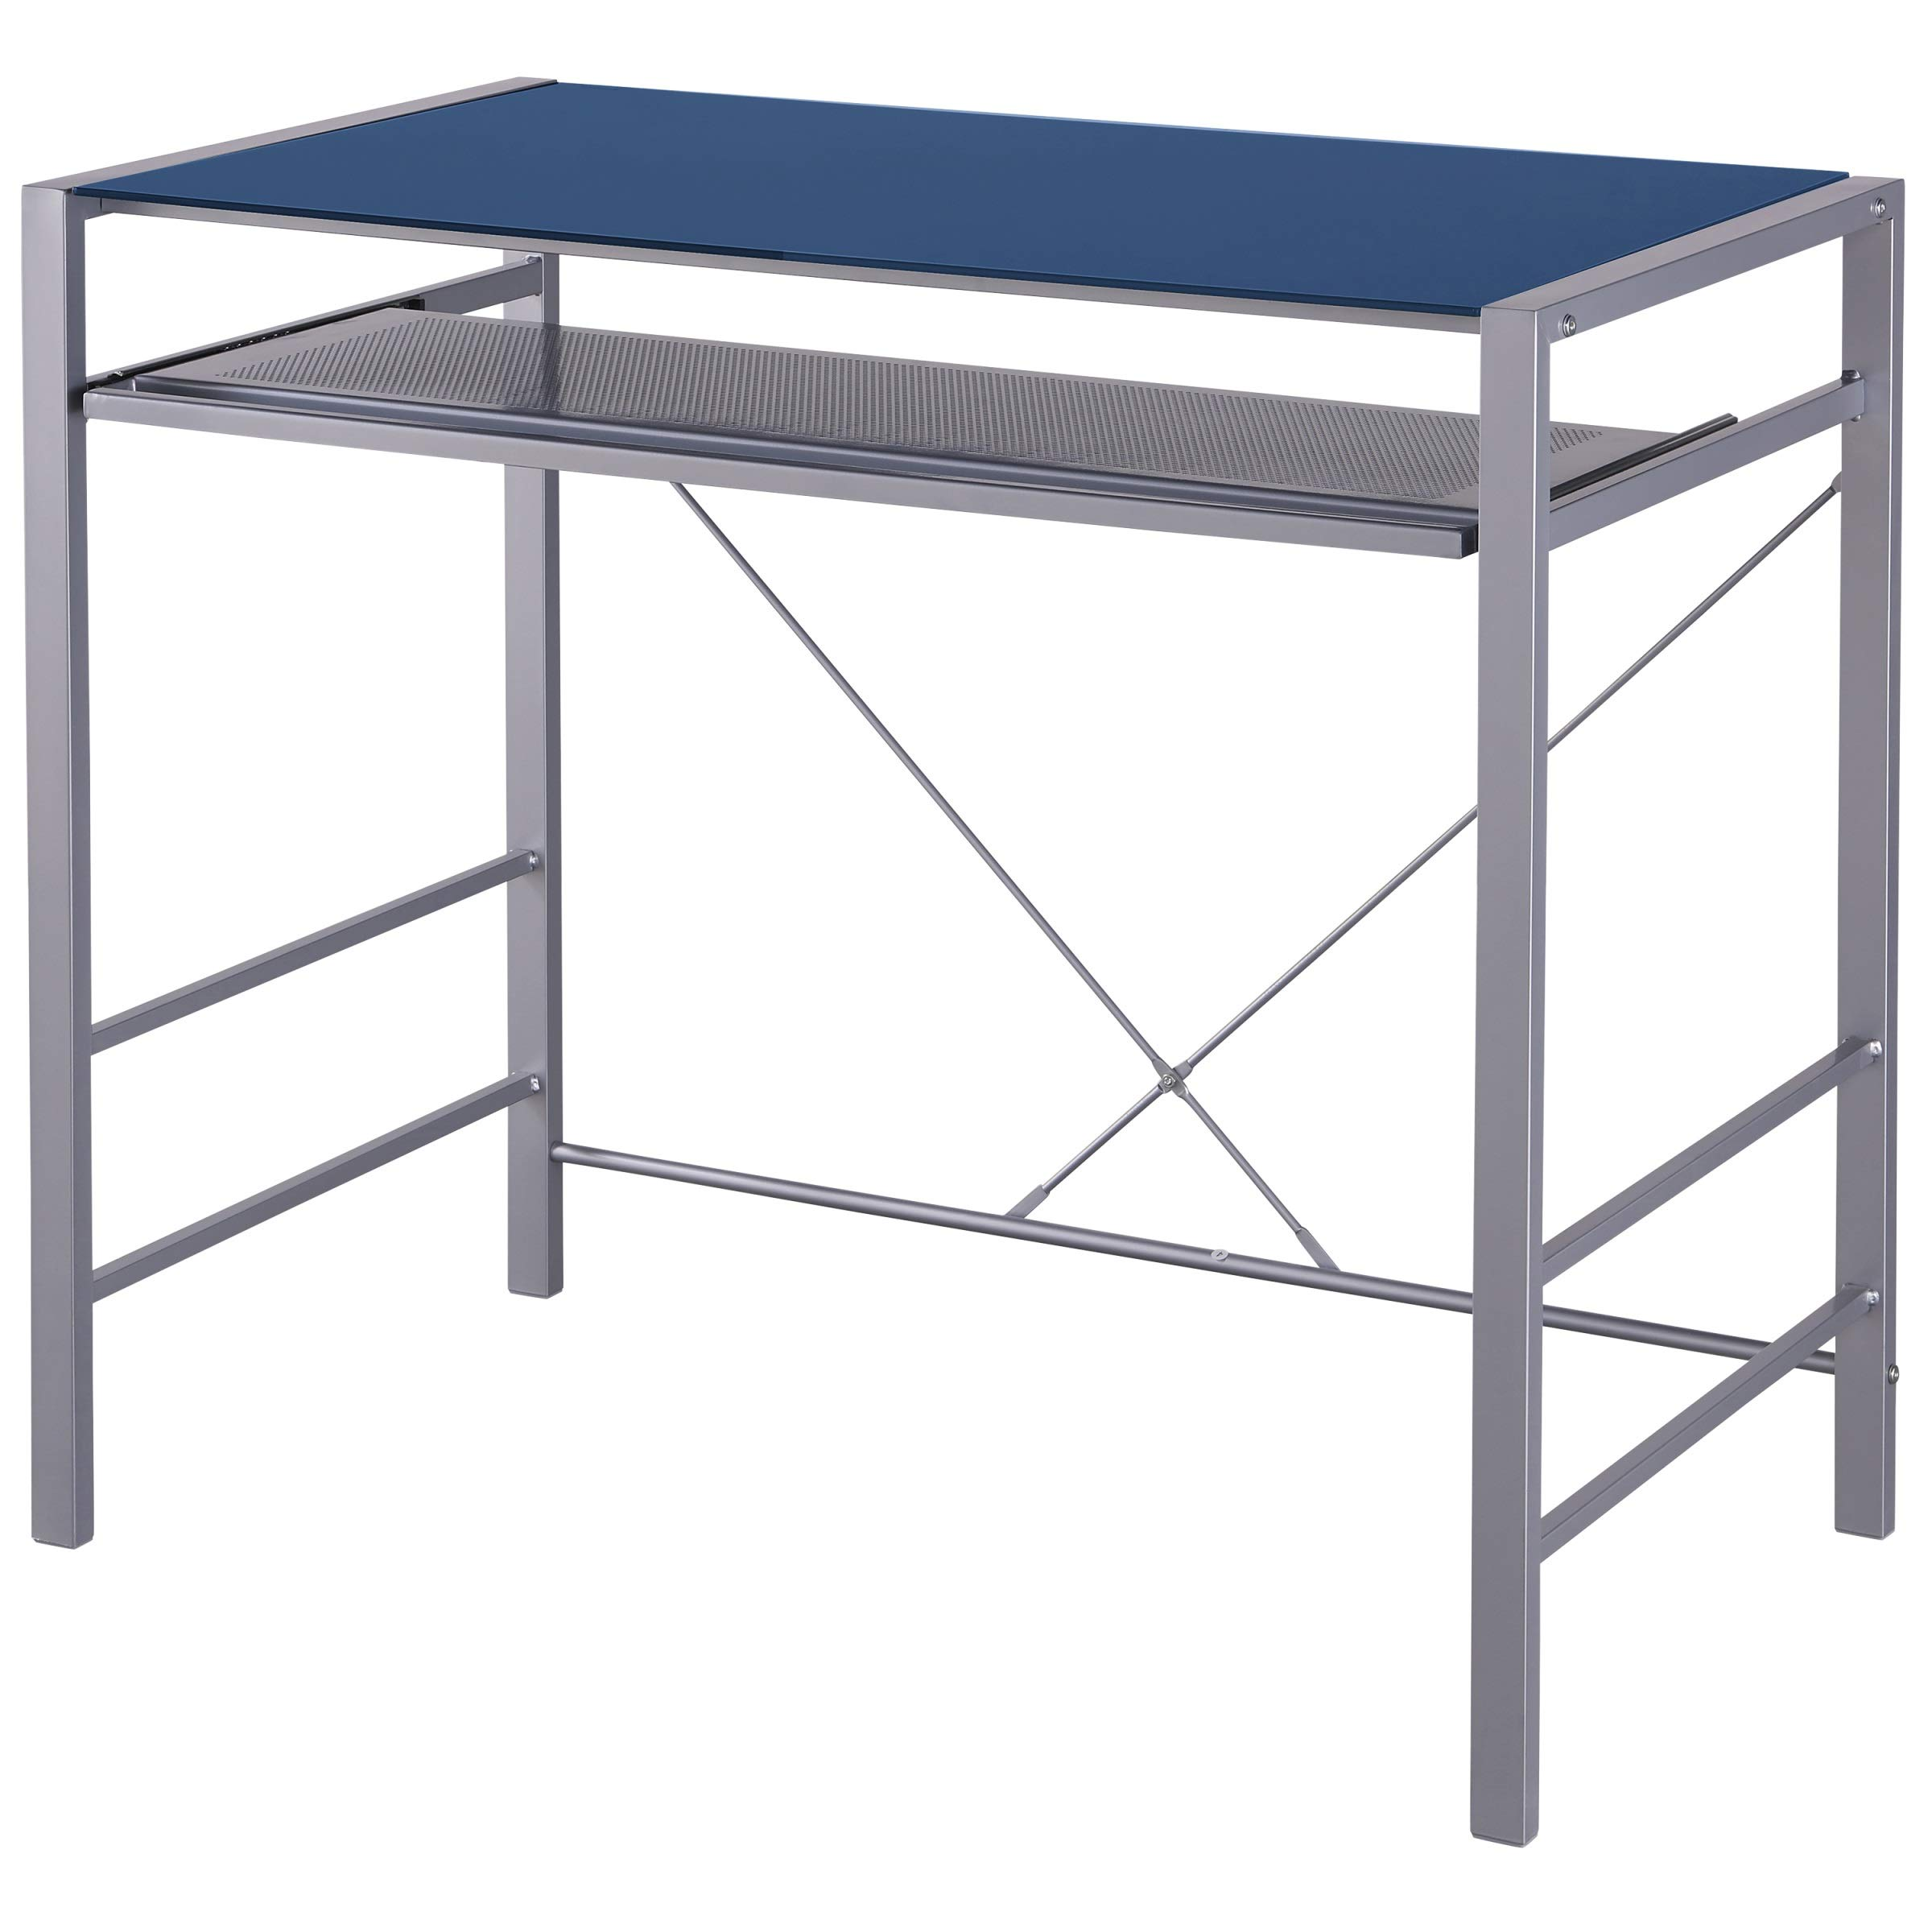 Computer Office Desk Blue Glass Material Top Modern Design Keyboard Tray Dorm College